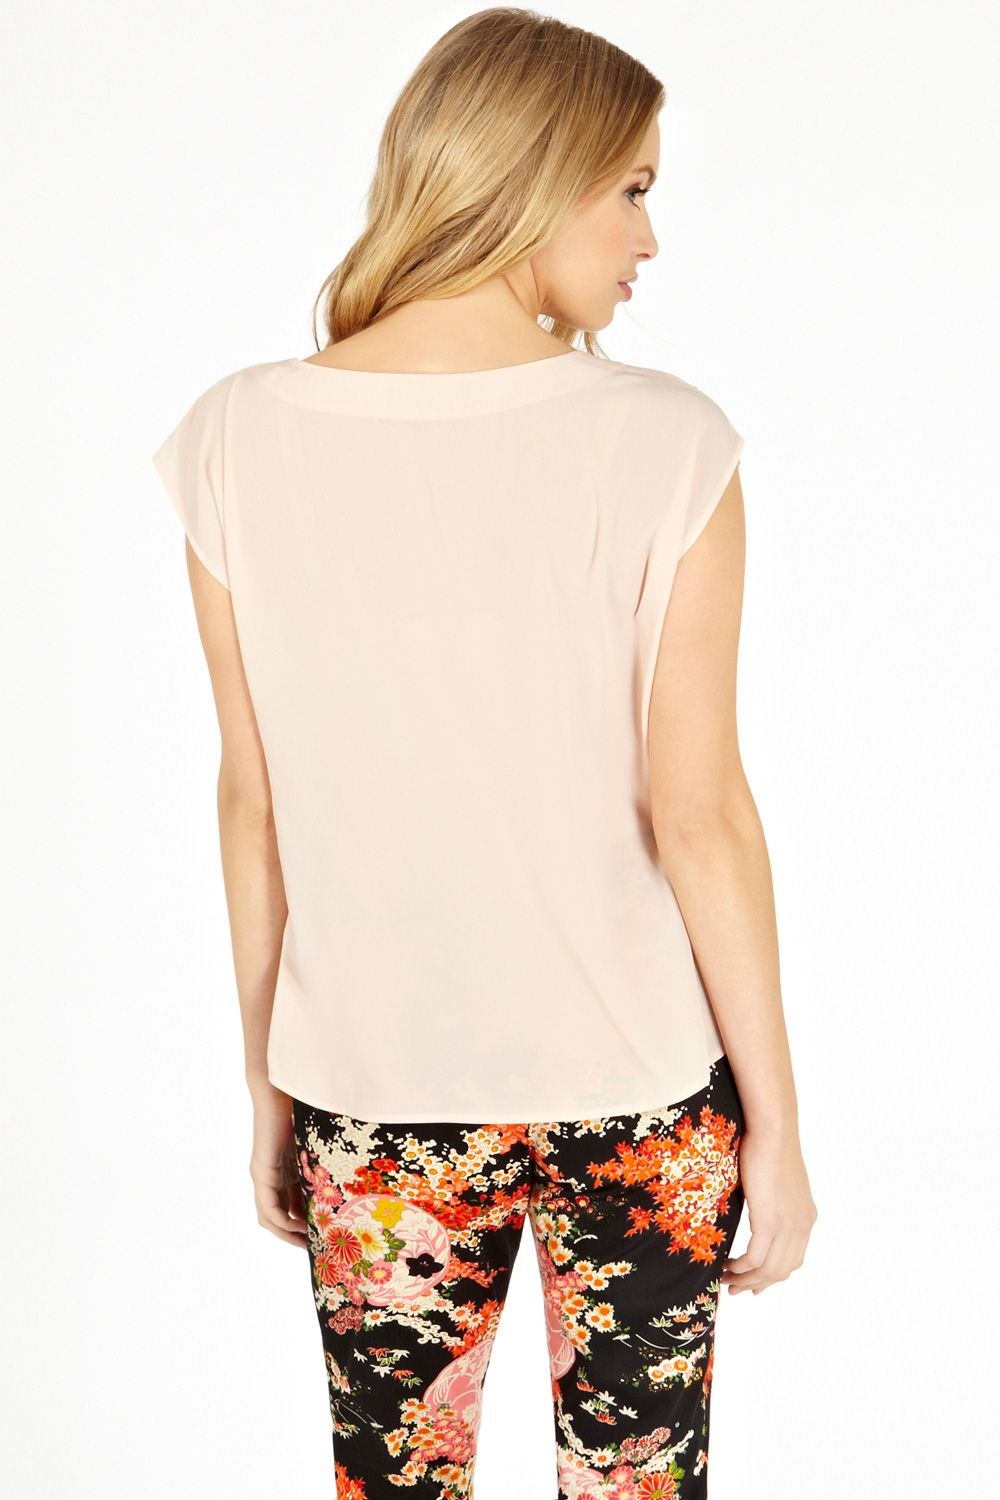 Button shoulder tshirt